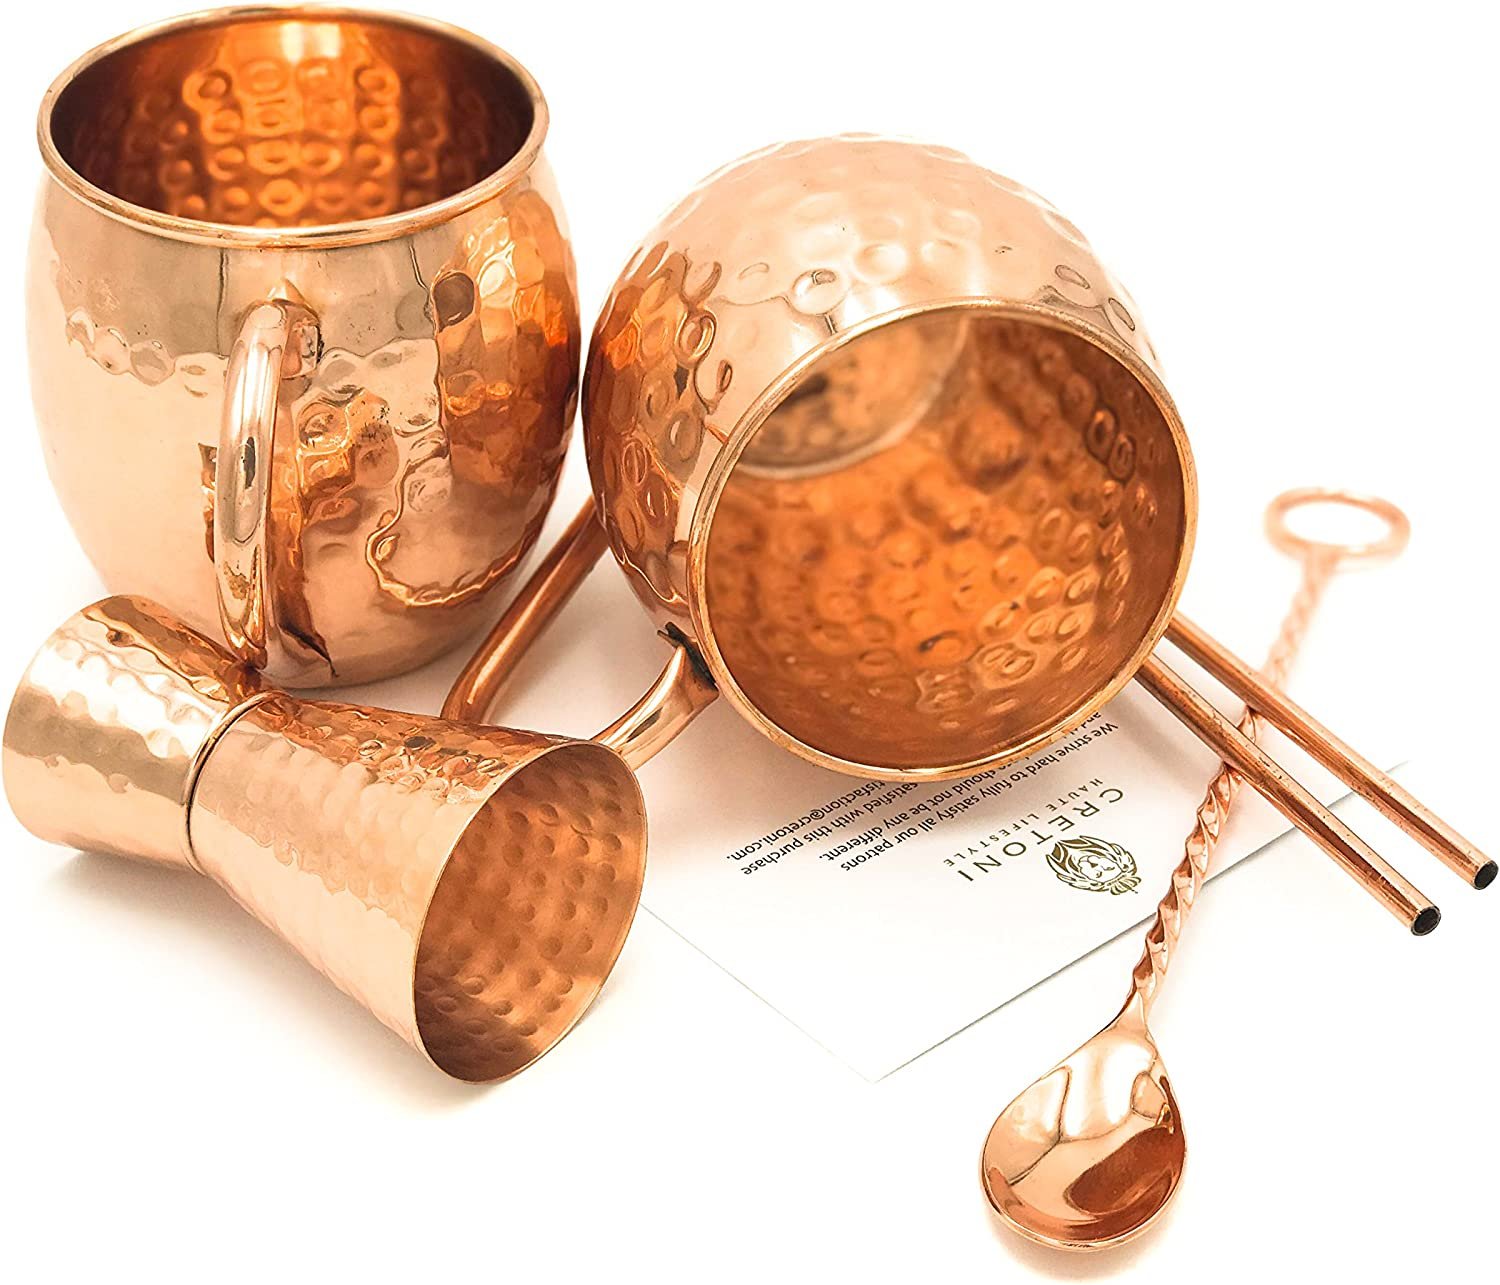 Cretoni Copperlin Pure Copper Hammered Moscow Mule Mugs Set of 2 with BONUS HANDCRAFTED 16 oz MUGS WITH 2 Copper Straws The Ultimate Gift set! Hammered Jigger /& Twisted Bar Spoon